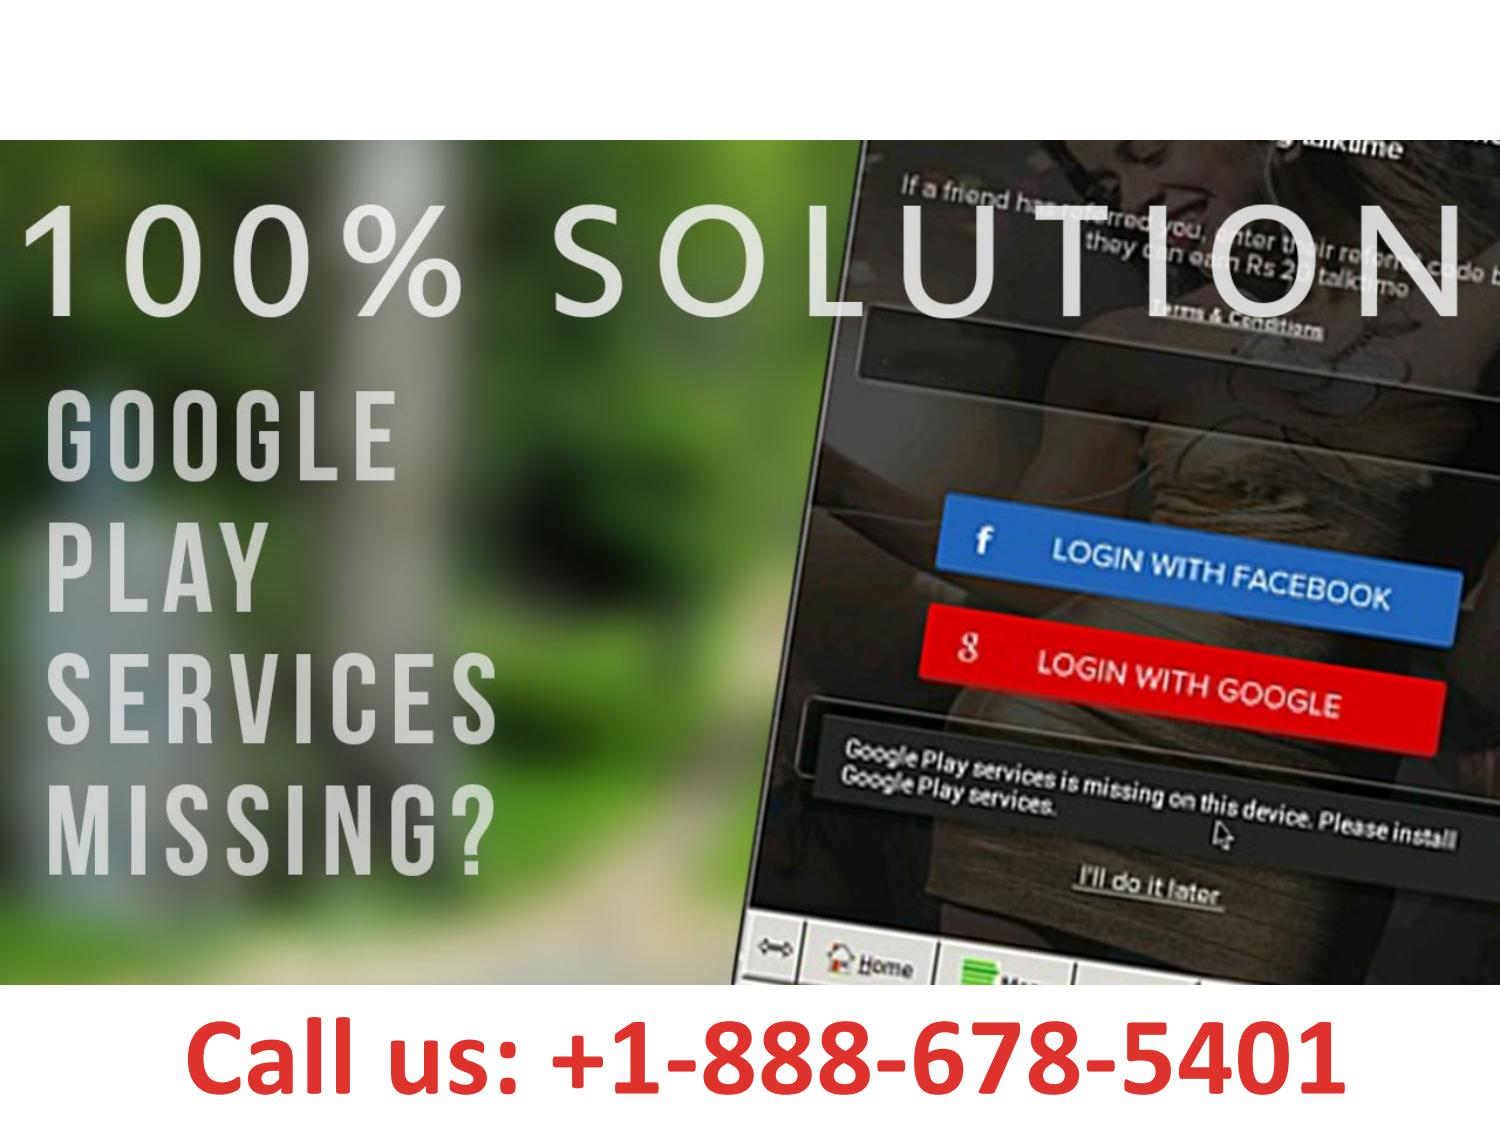 Dial +1-888-678-5401 Can't install Google play services